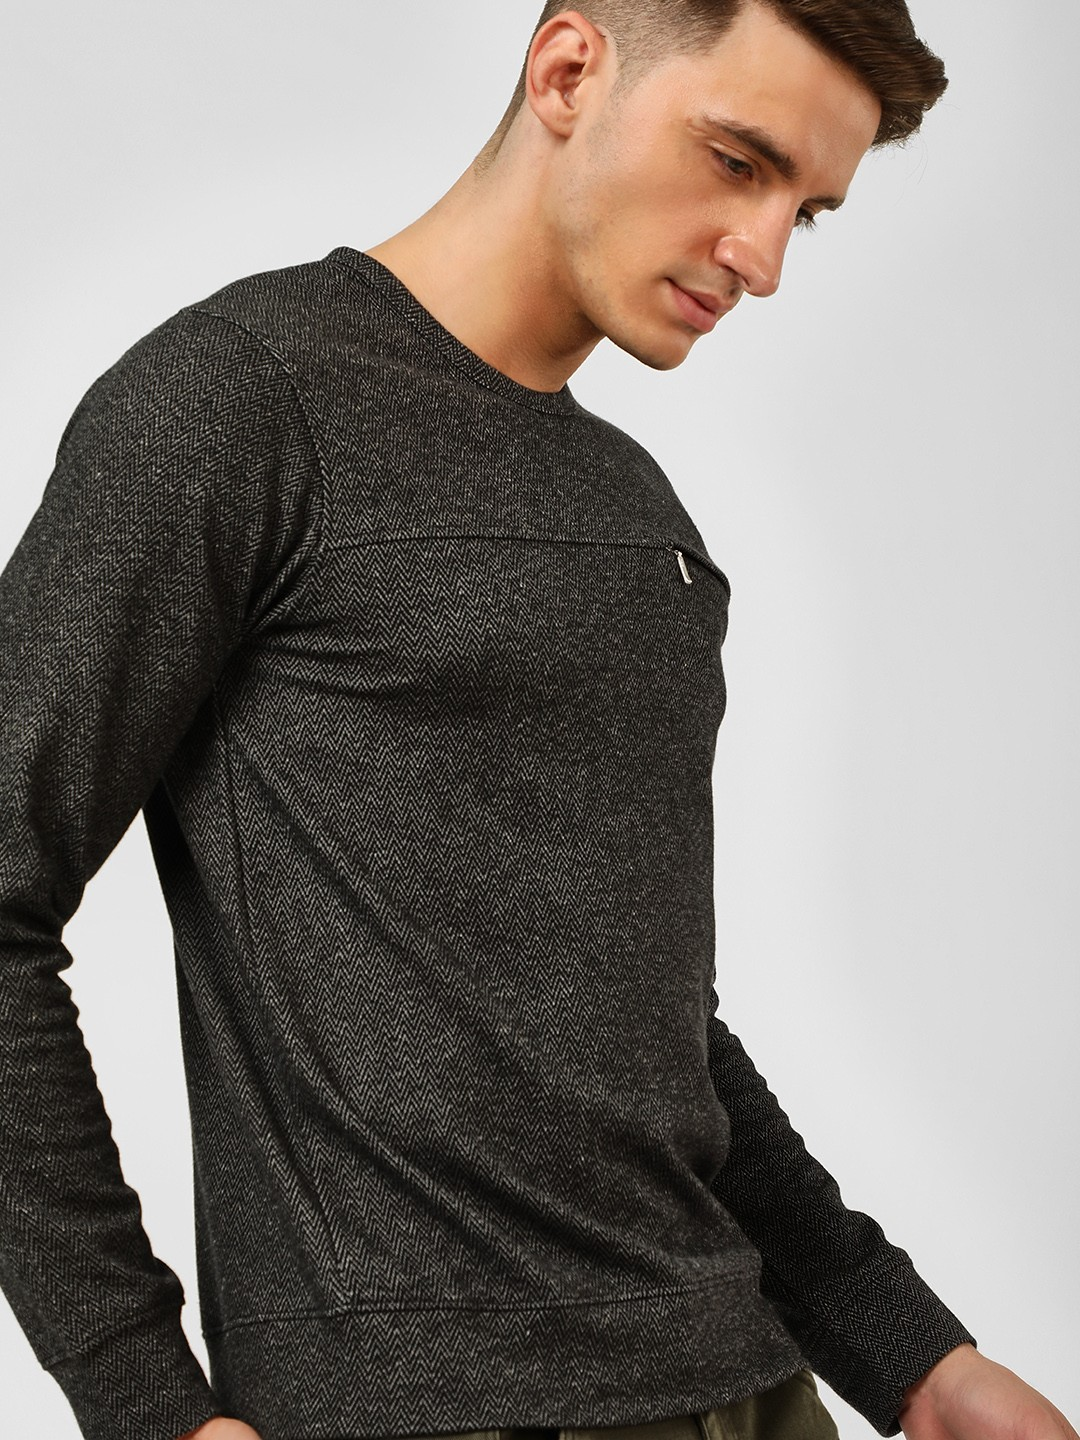 Buffalo Dark Grey Woven Long Sleeve Sweatshirt 1